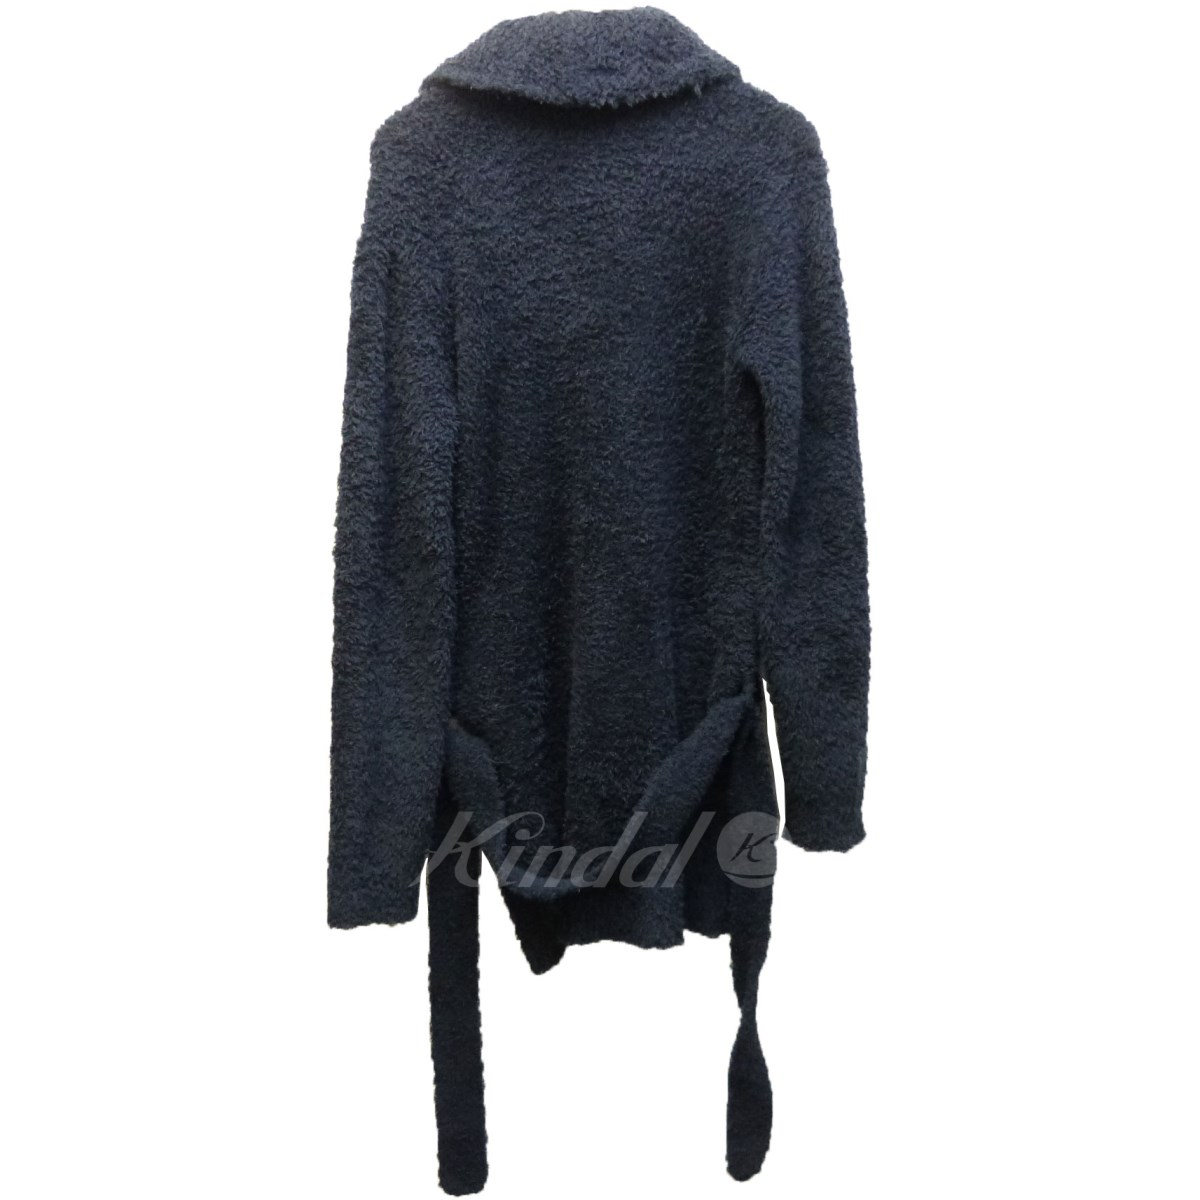 BAREFOOT DREAMS X RHC Ron Herman right sleeve logo embroidery waist cord pile cardigan navy size: S (base-up foot dreams)